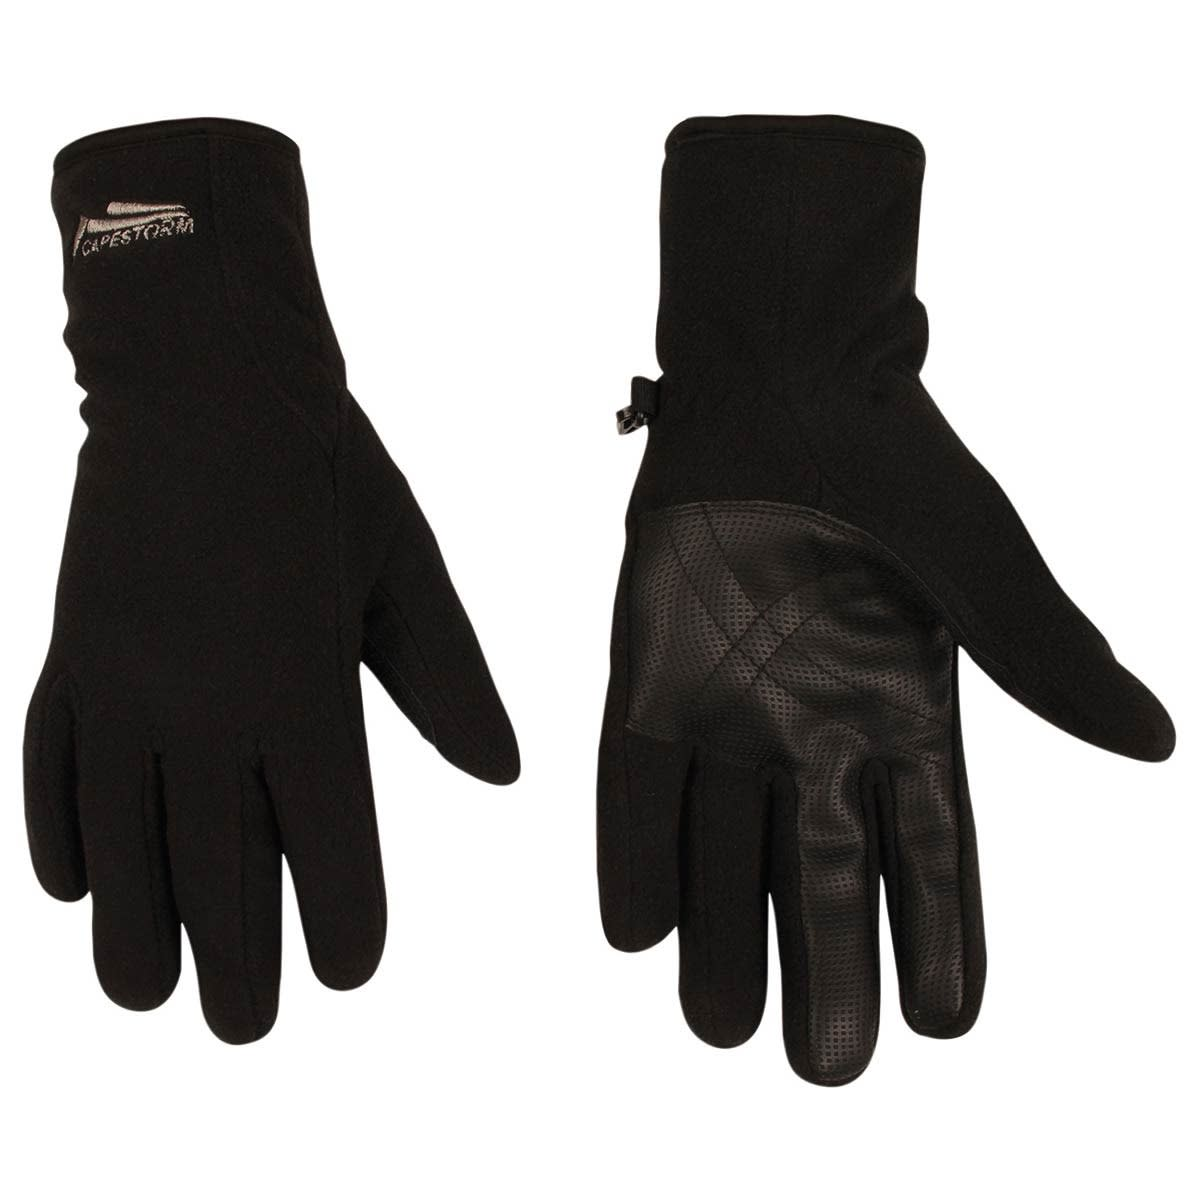 Capestorm Women's Fleece Glove